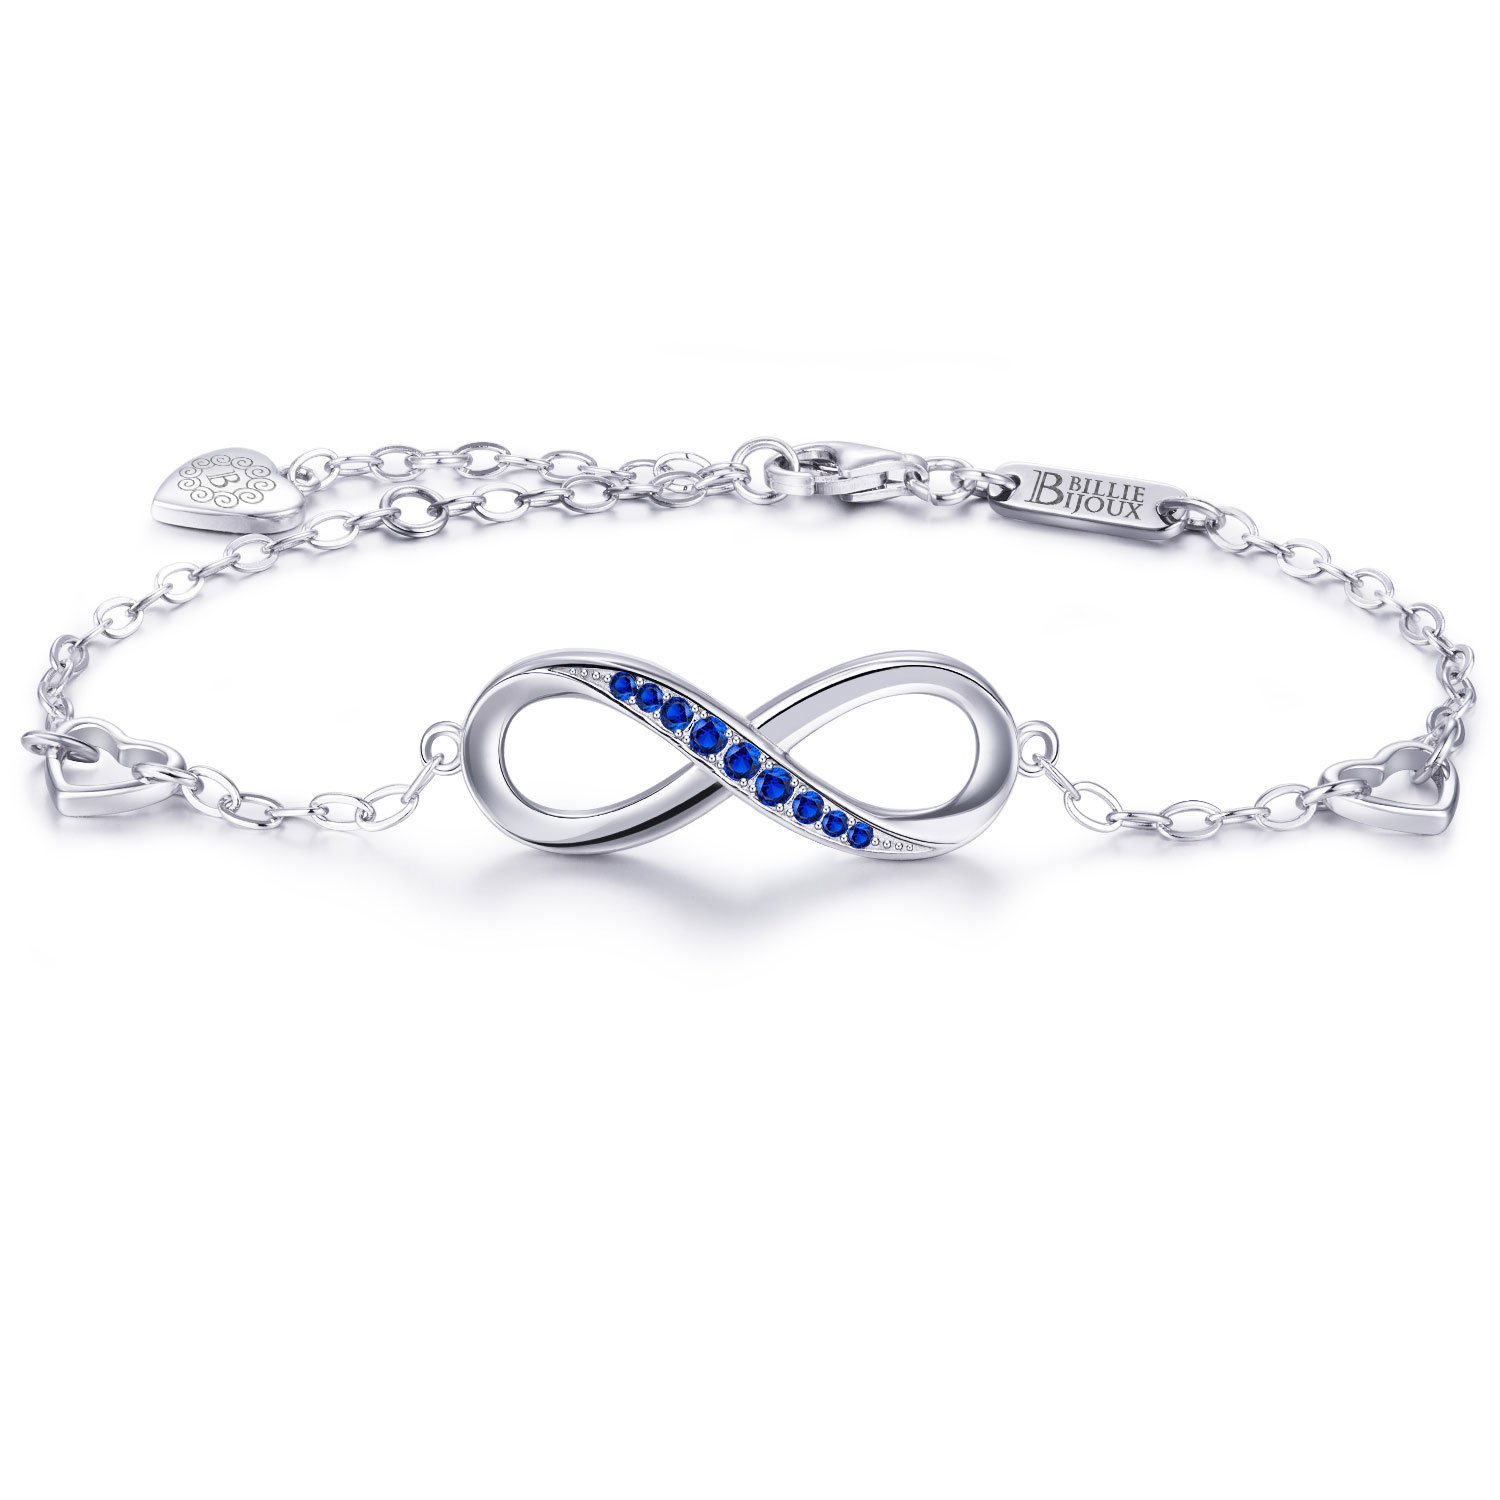 Billie Bijoux Womens 925 Sterling Silver Infinity Endless Love Symbol Charm Adjustable Bracelet Gift for Mother's Day (Blue)